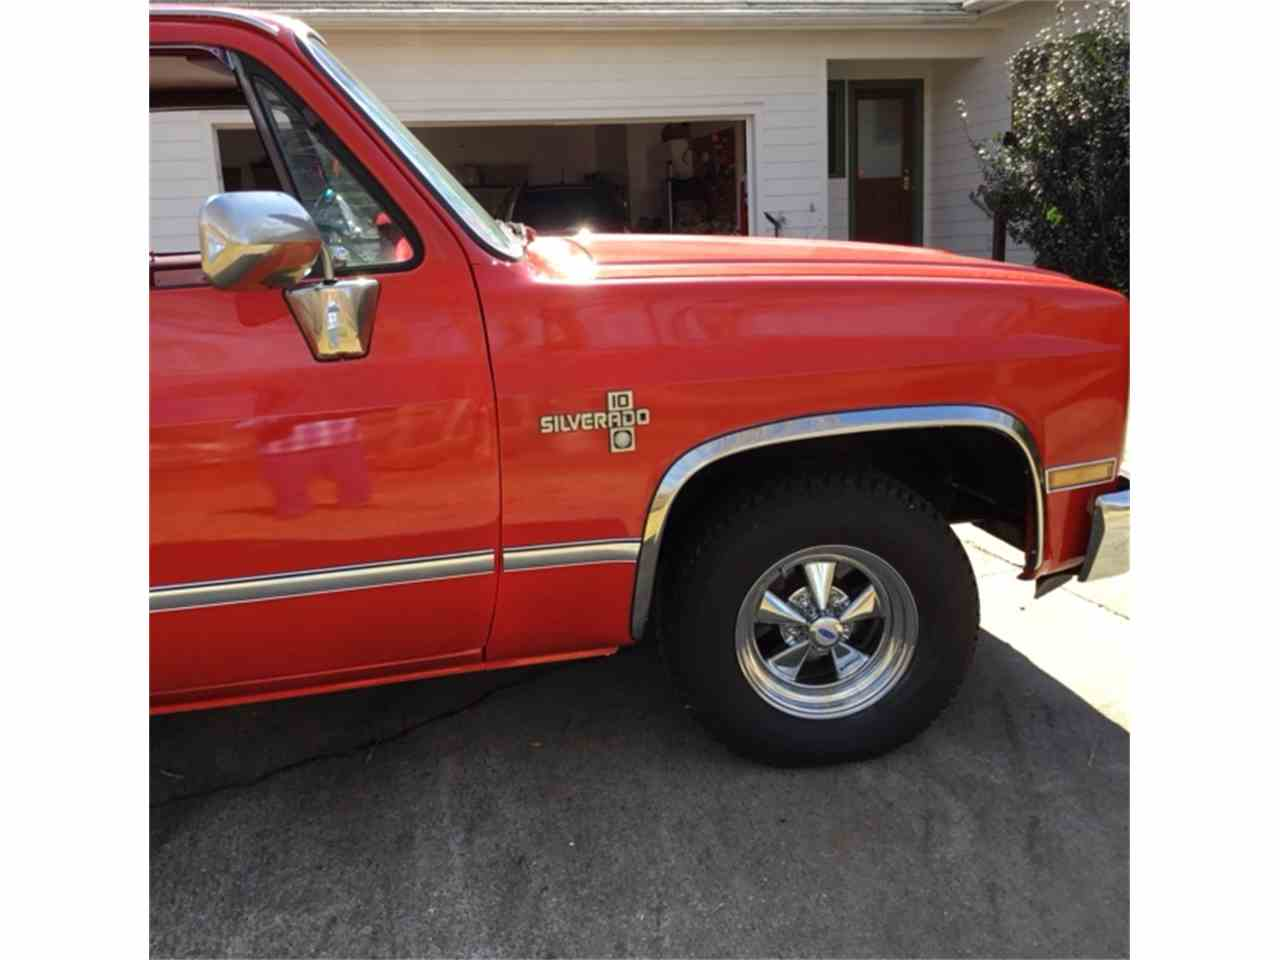 Large Picture of 1985 Silverado located in North Carolina - $19,500.00 Offered by a Private Seller - L1W3